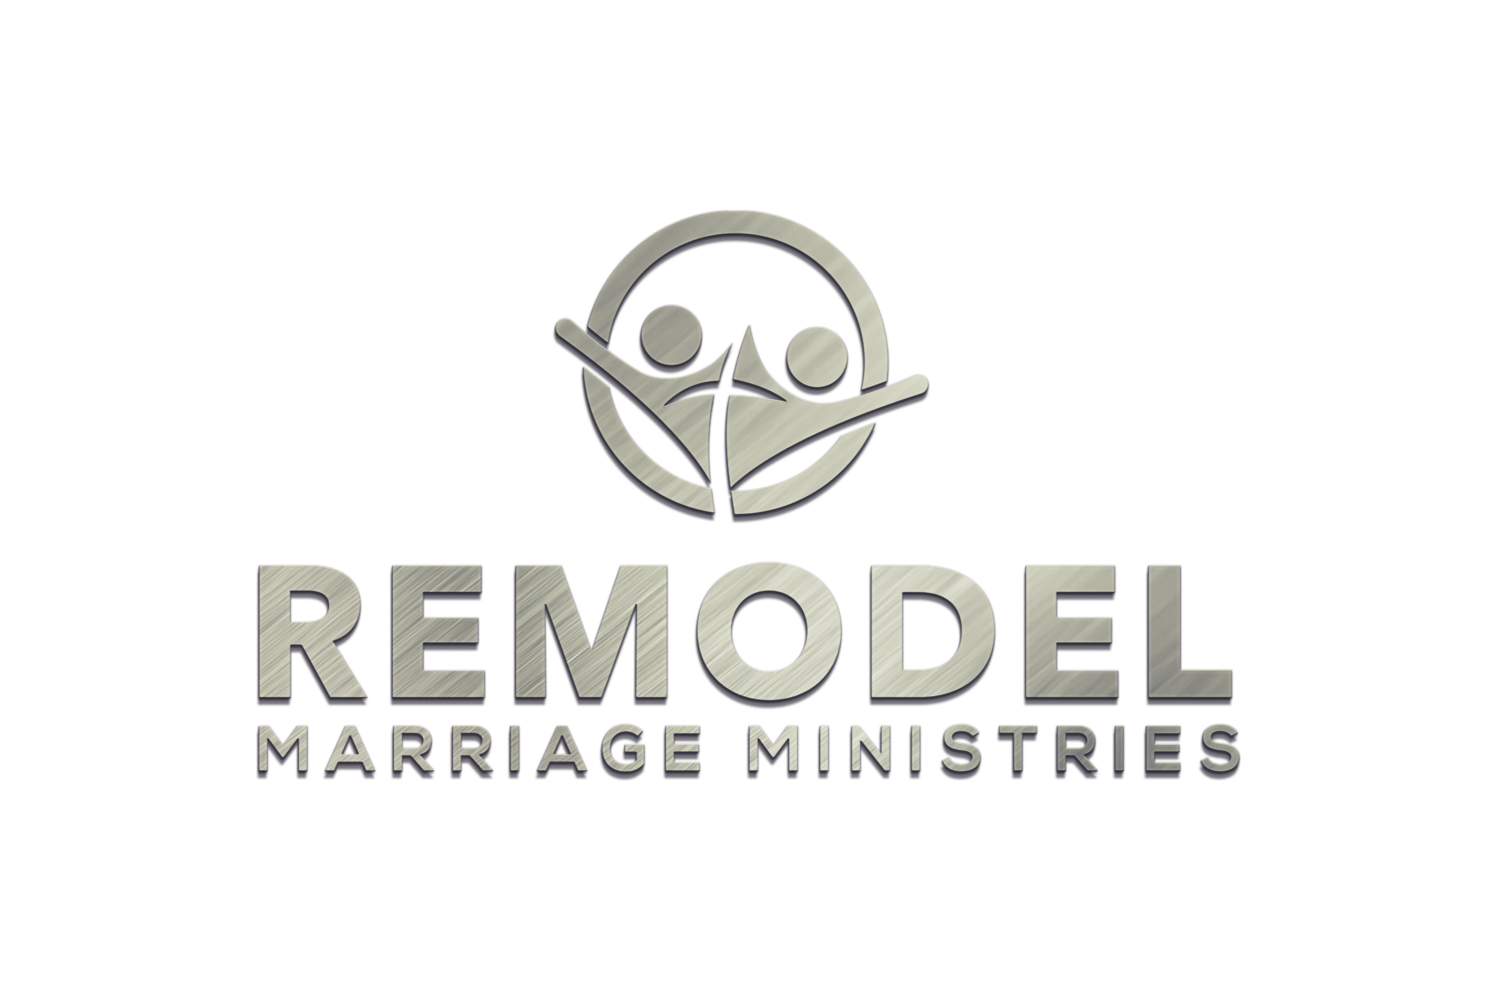 Remodel Marriage Ministries